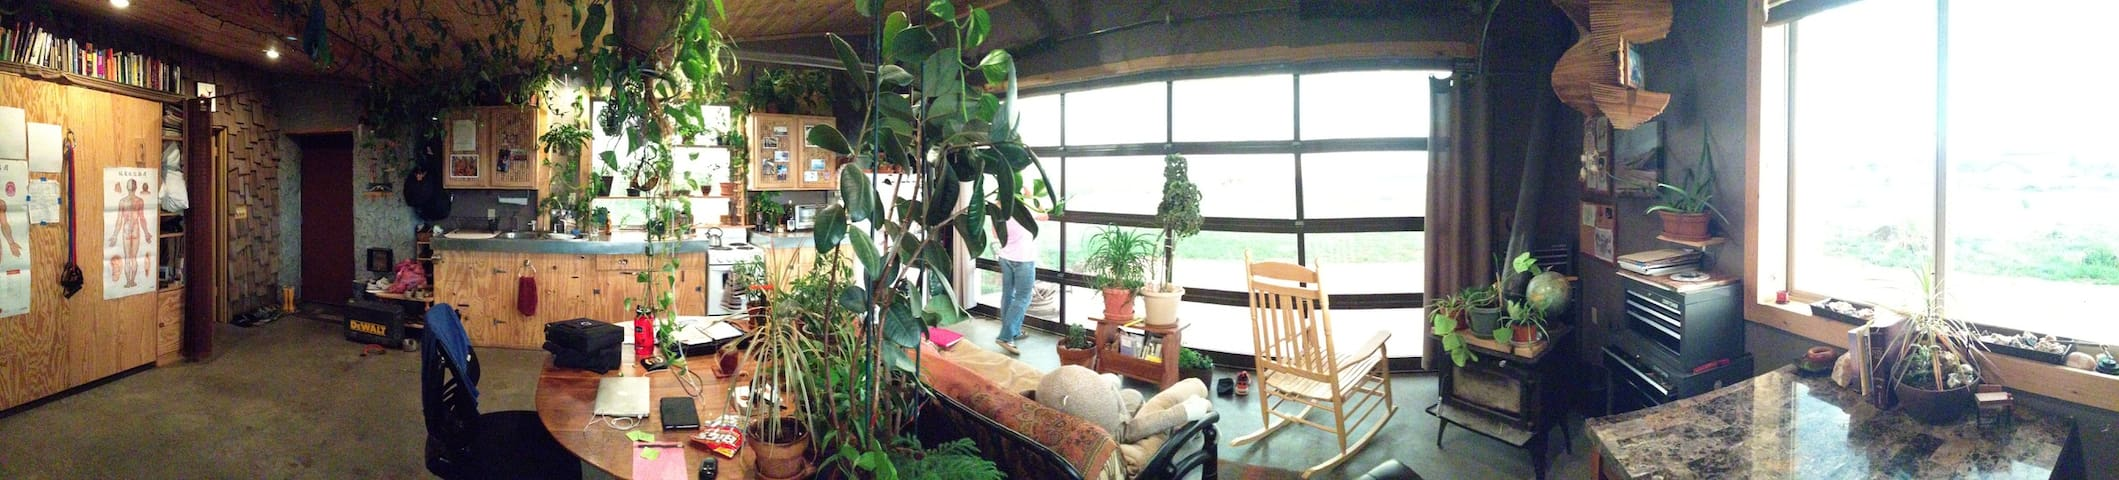 Panorama of the inside of the studio